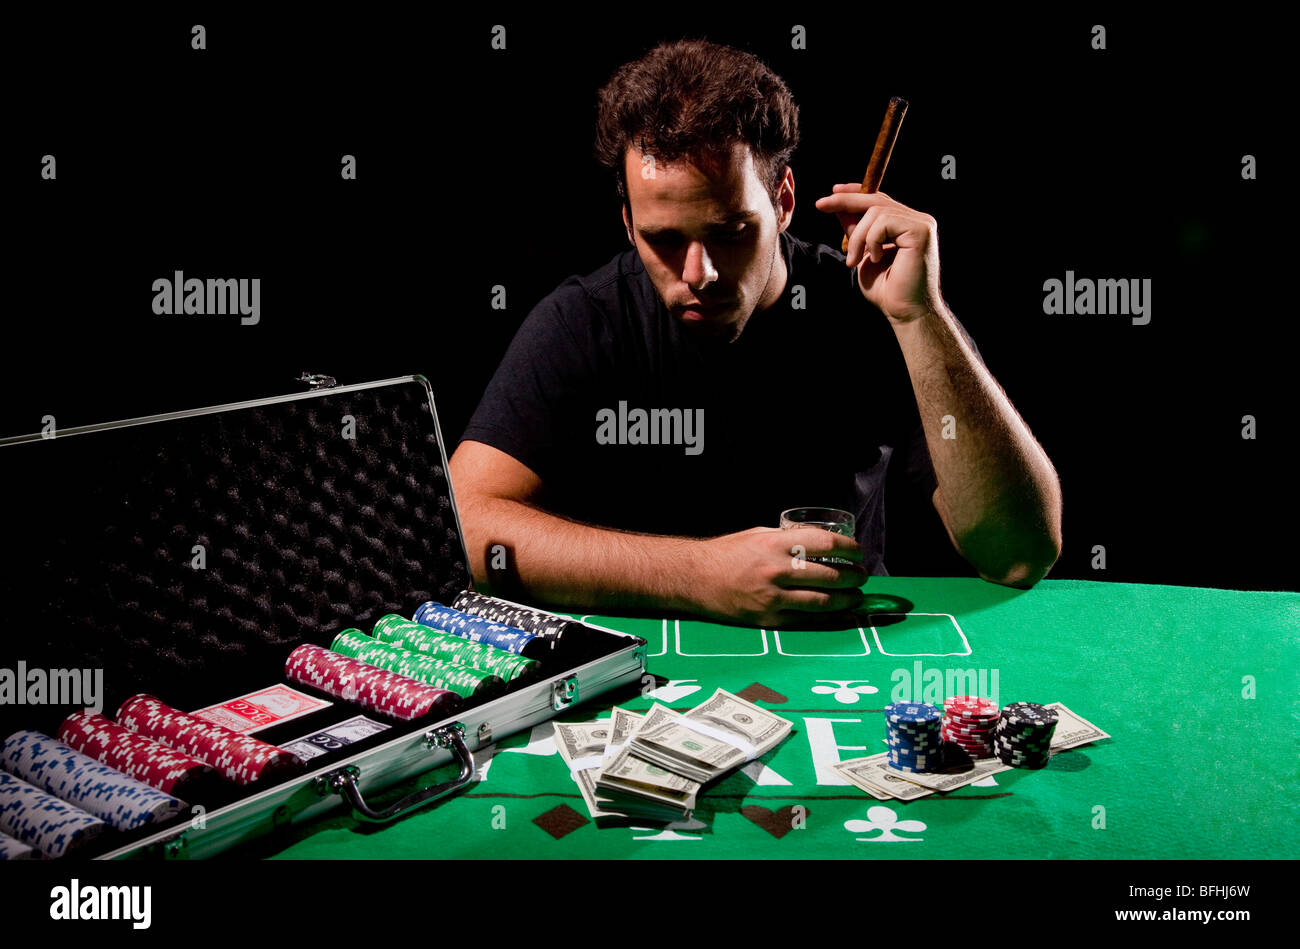 A young male gambler at the gambling table holding a cigar model release available - Stock Image